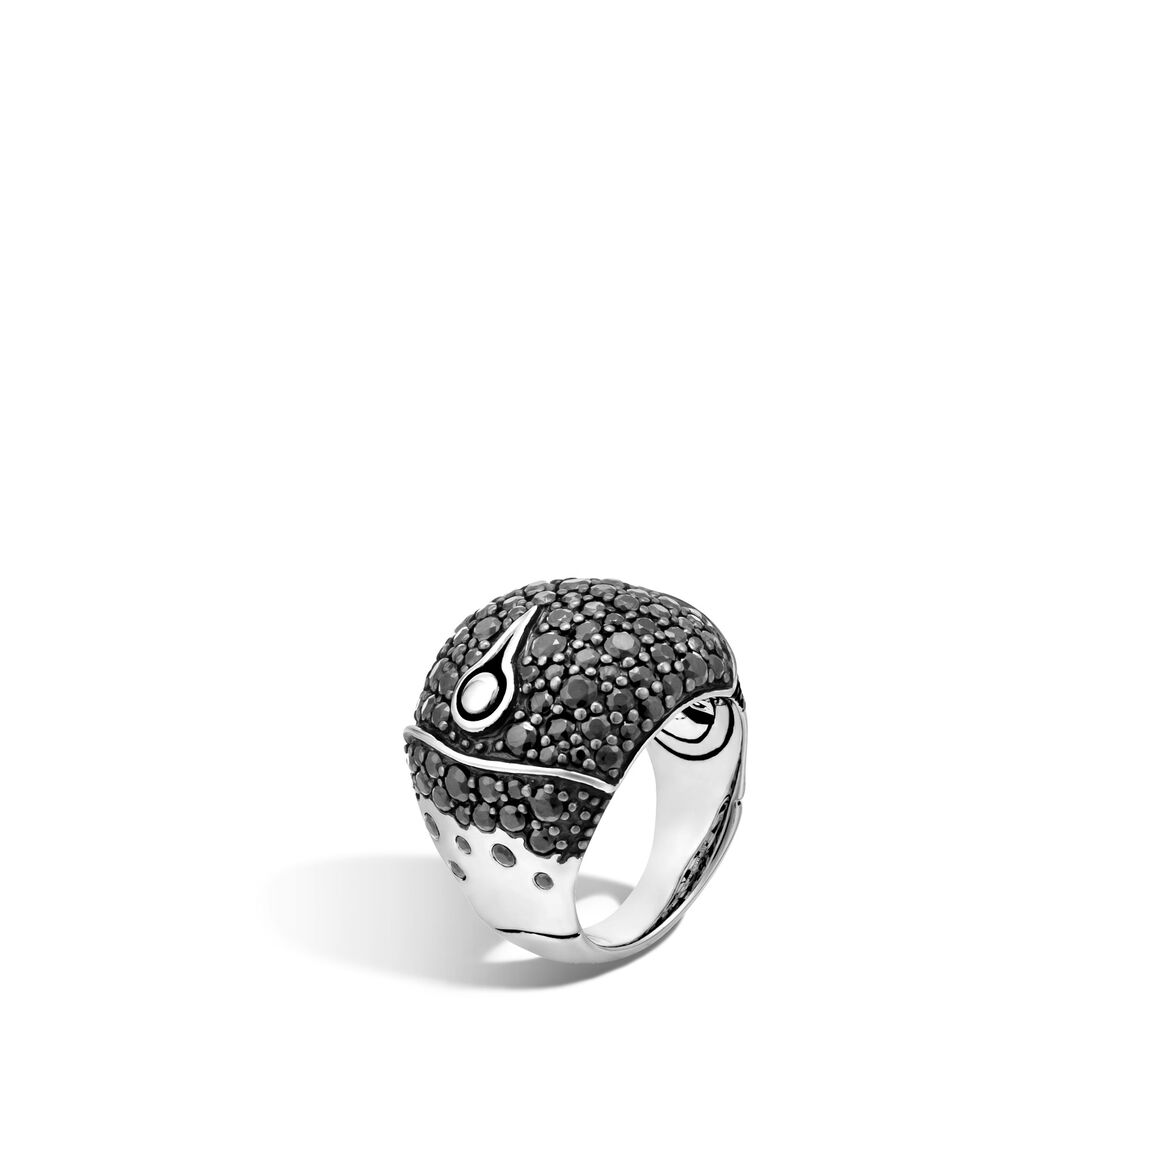 Bamboo Dome Ring in Silver with Gemstone